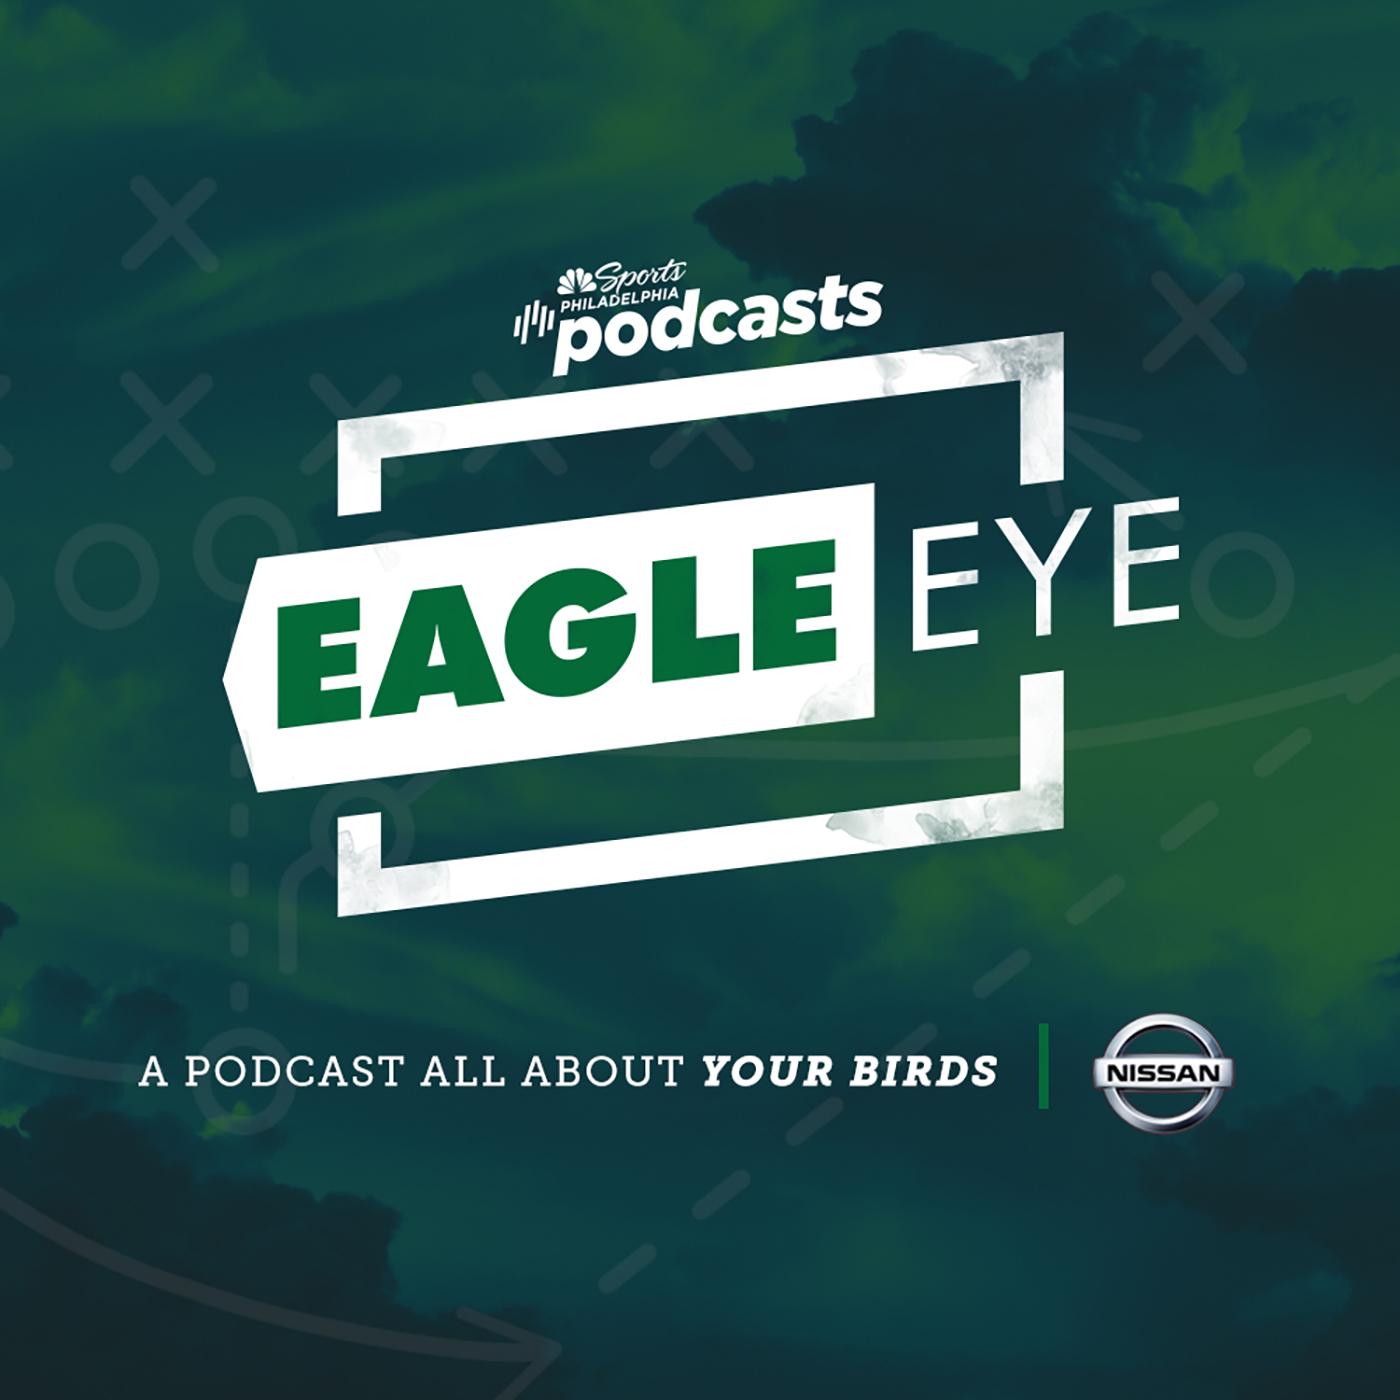 graphic relating to Philadelphia Eagles Printable Schedule named Eagle Eye: A Philadelphia Eagles Podcast Pay attention by